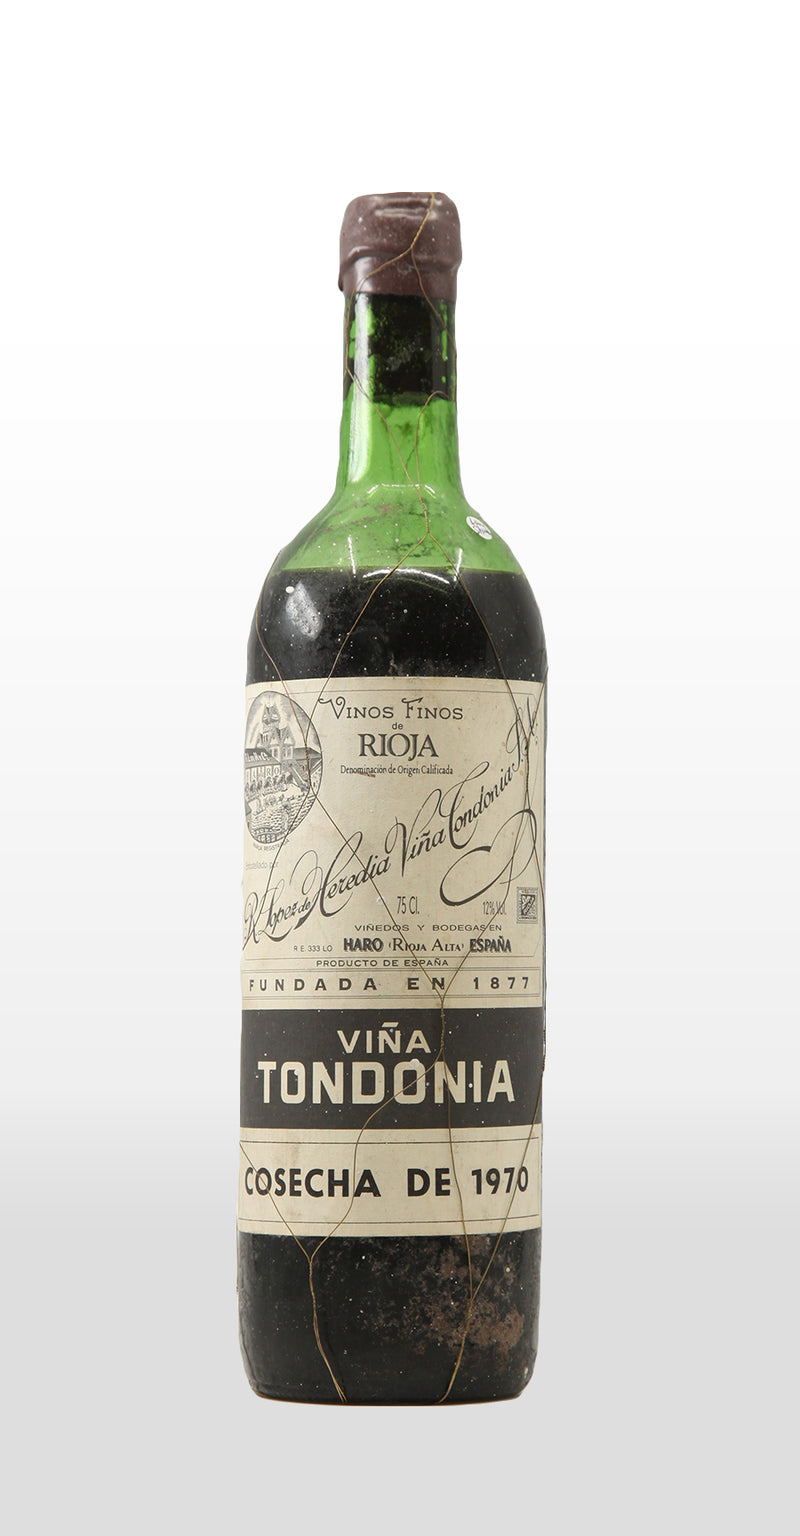 R. LOPEZ DE HEREDIA VINA TONDONIA RIOJA DOCA GRAN RESERVA 1970 (LOW SHOULDER) 750ML